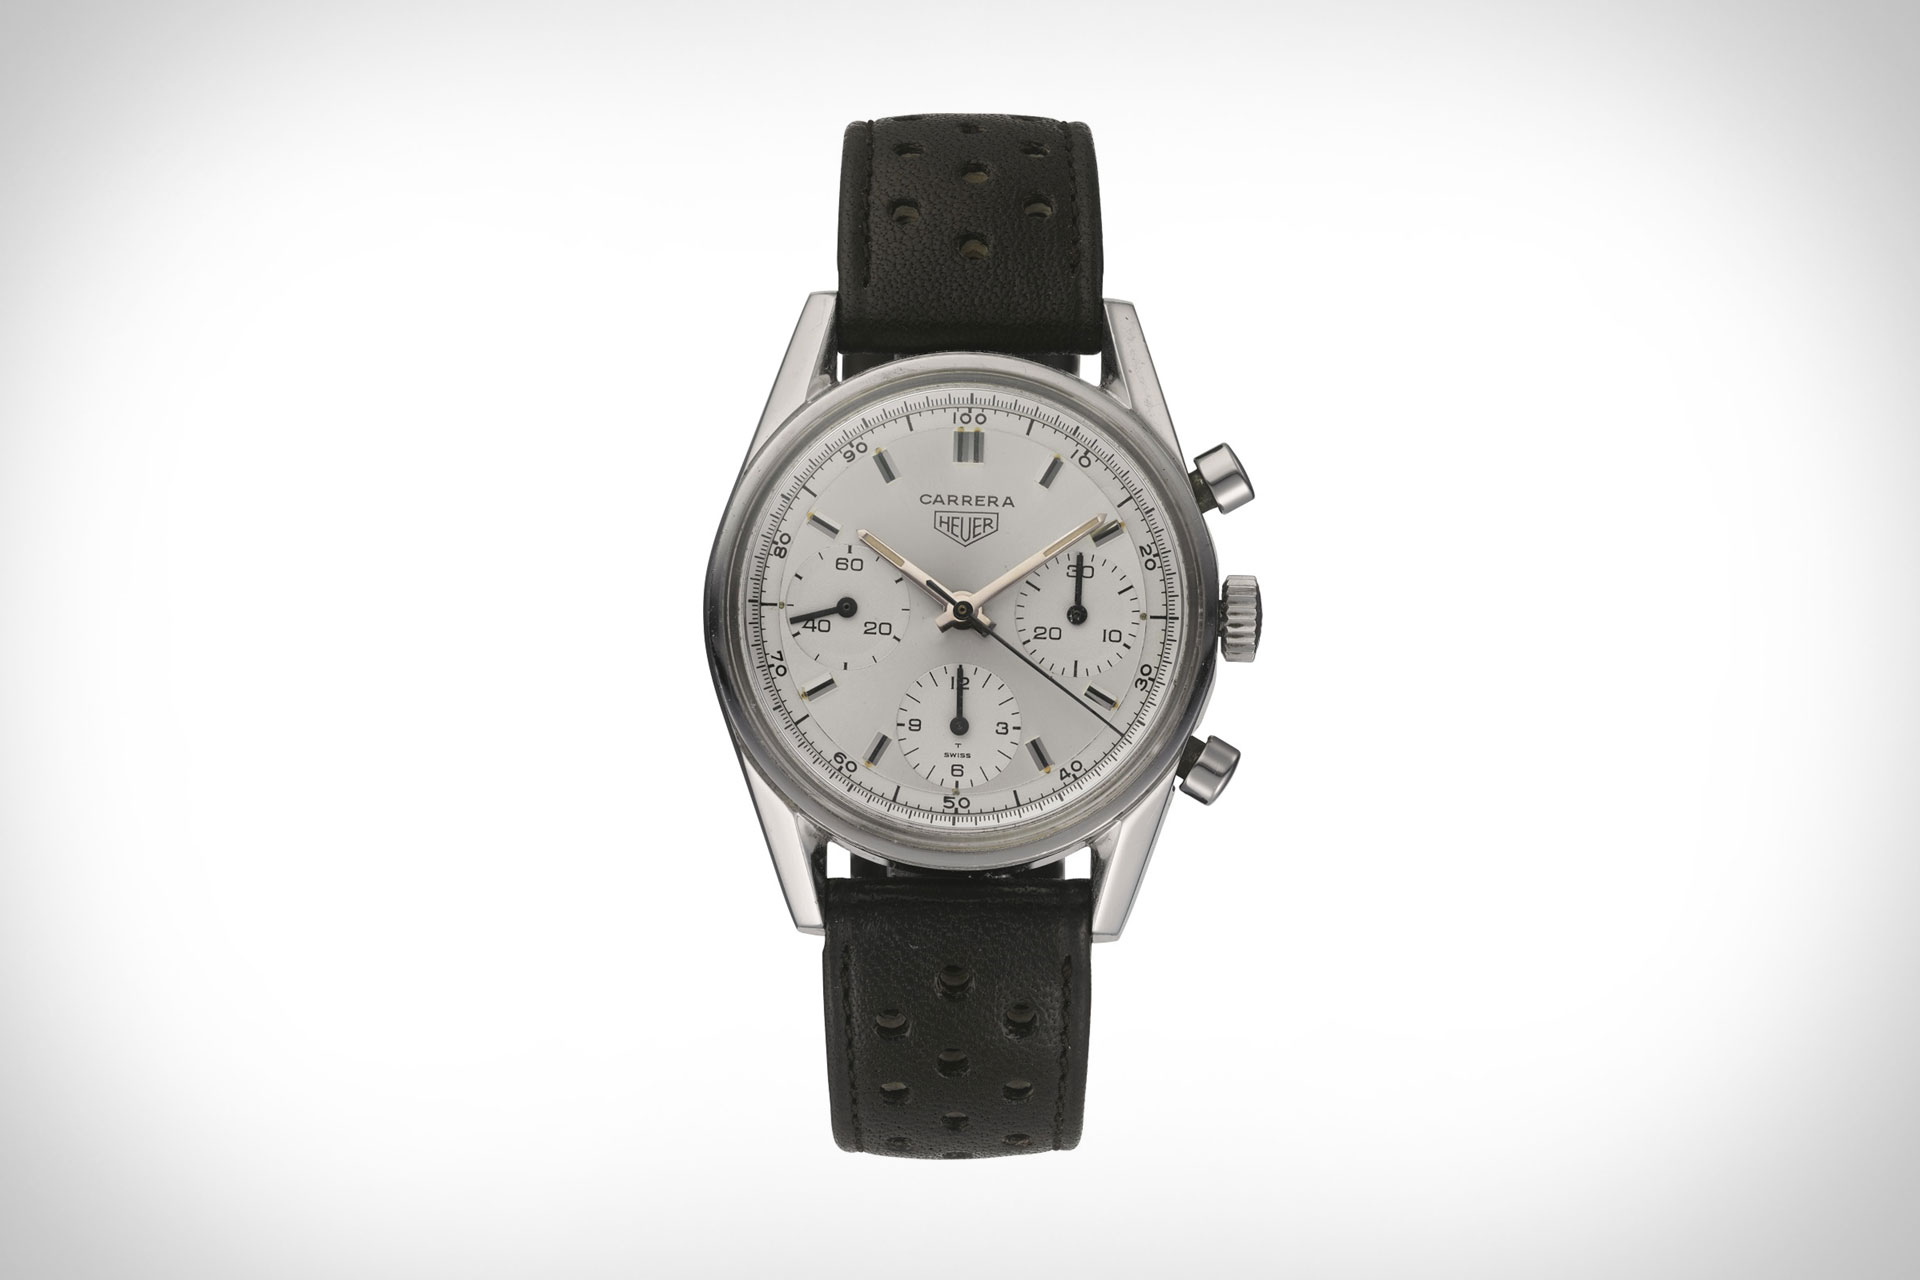 Tag Heuer Carrera 160 Years Silver Watch